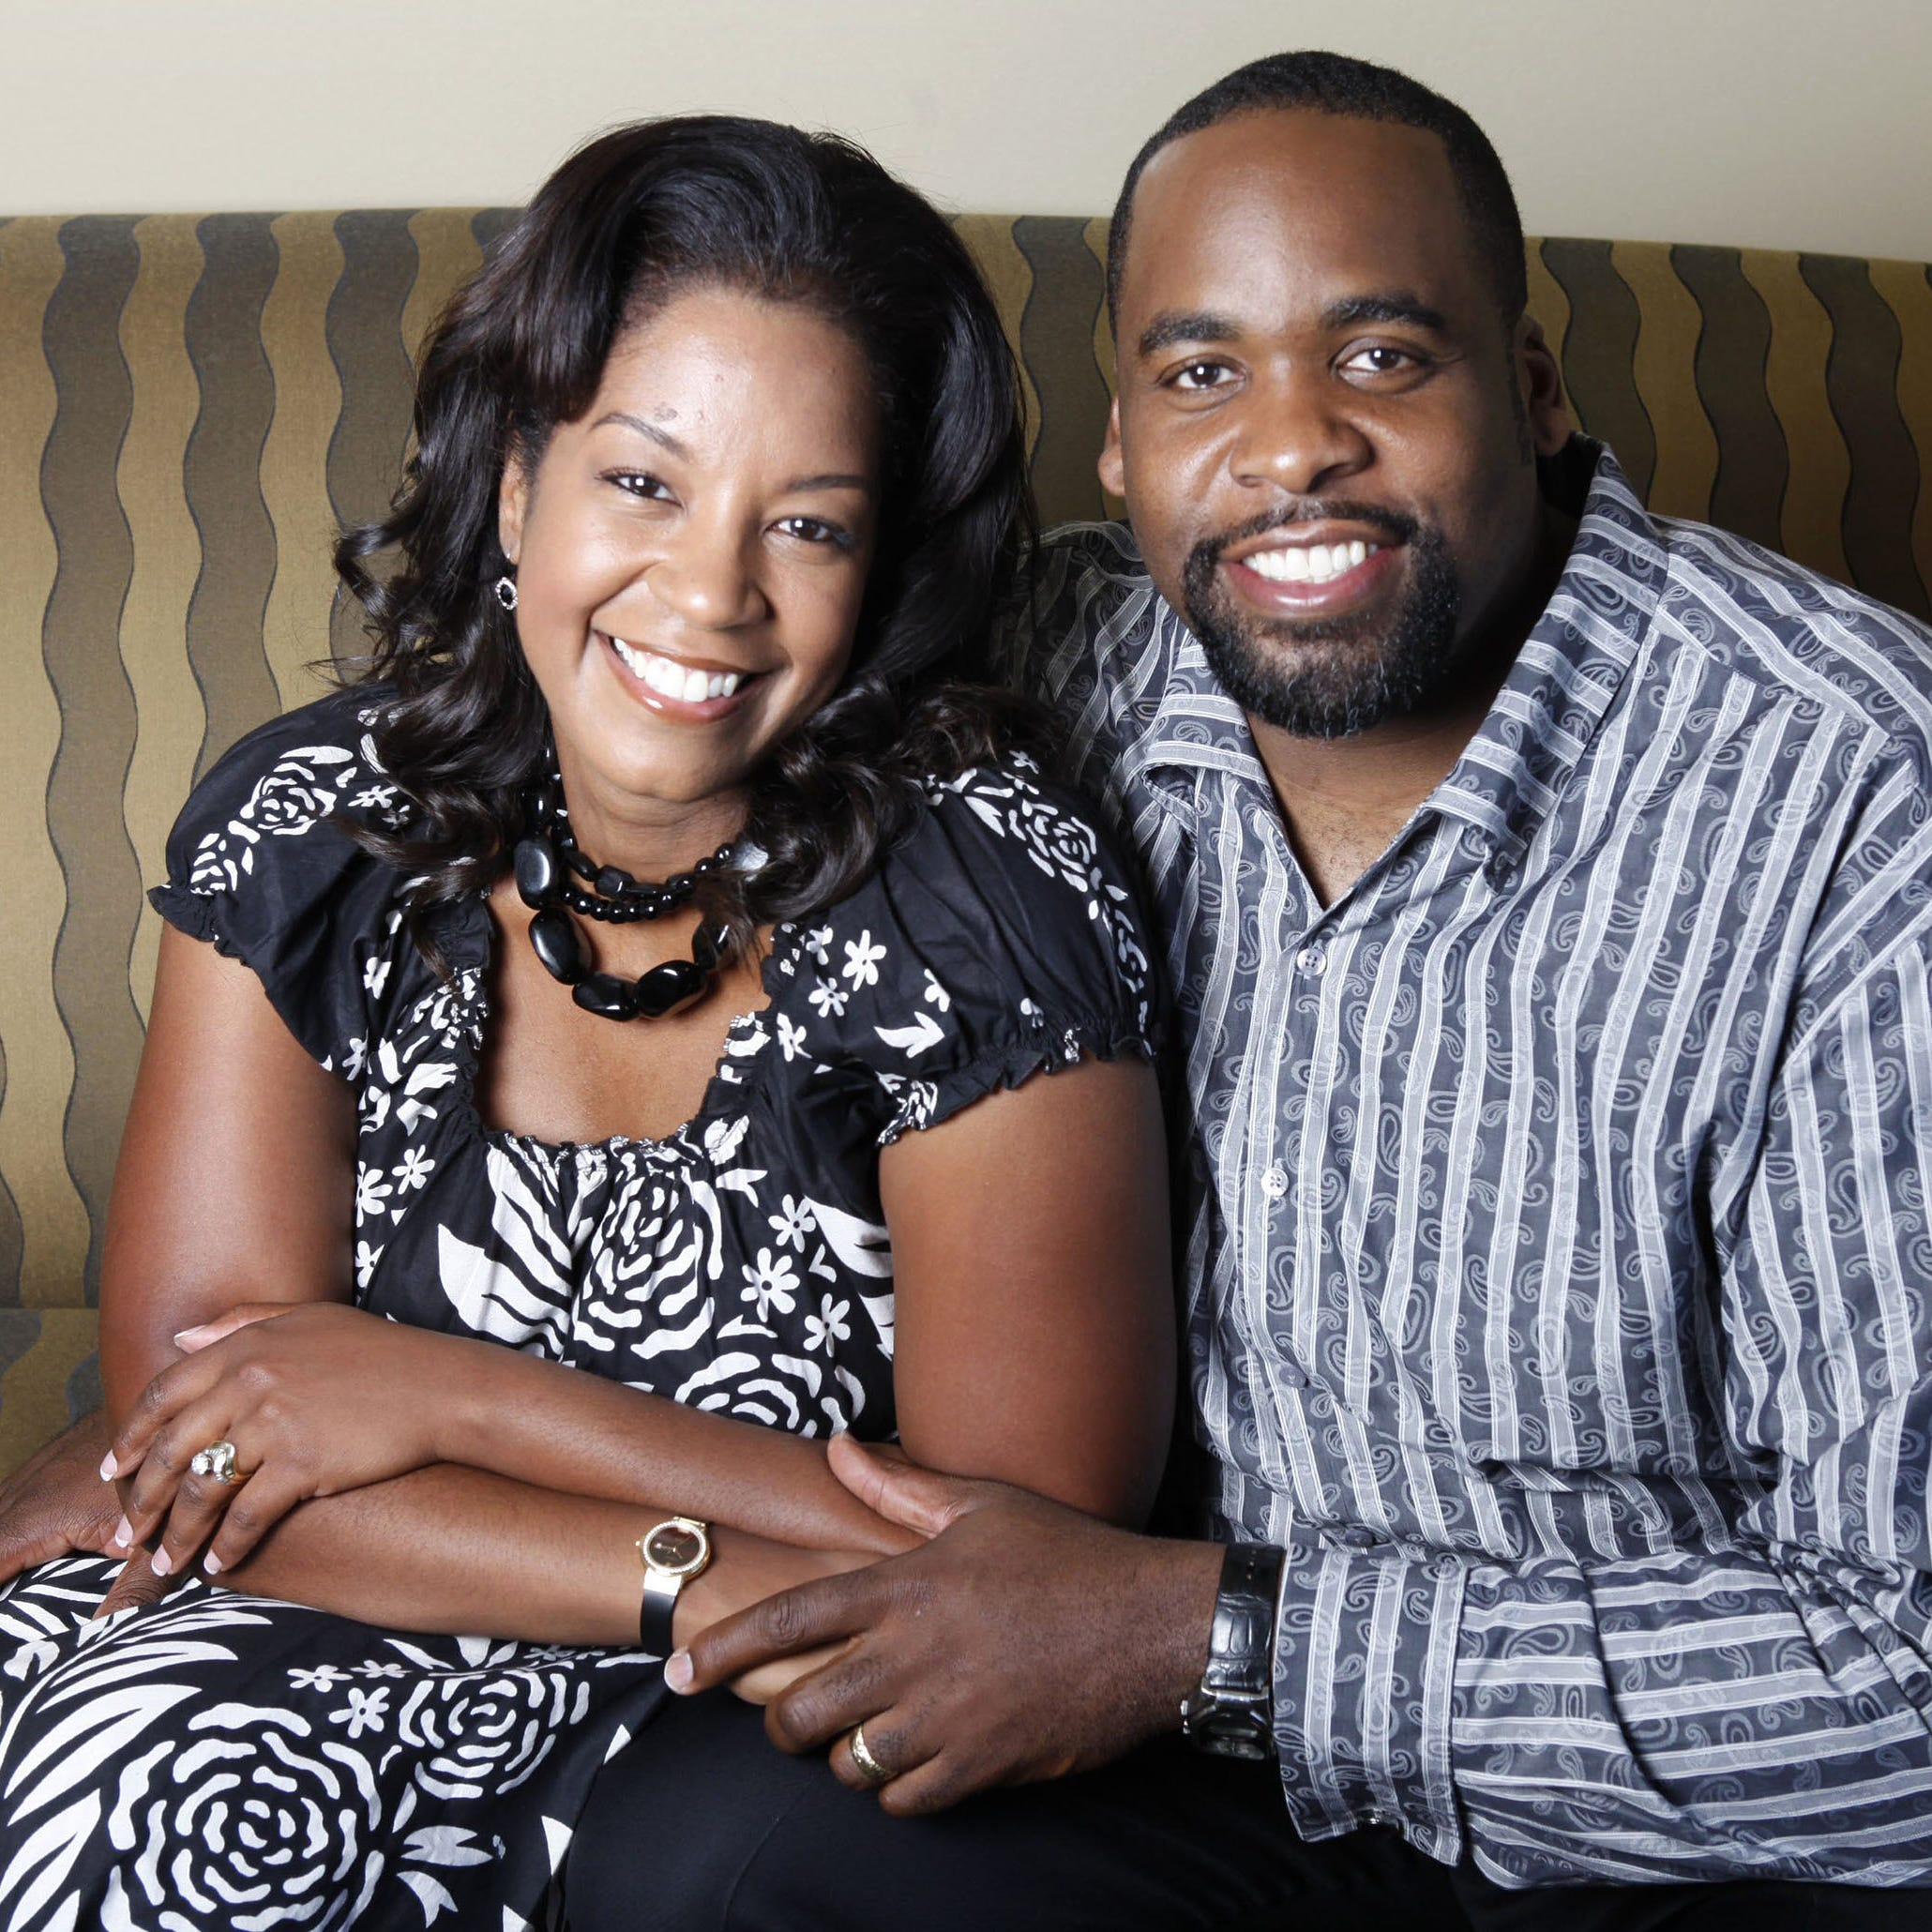 Kwame Kilpatrick reveals divorce on Facebook: 'I lost my marriage'